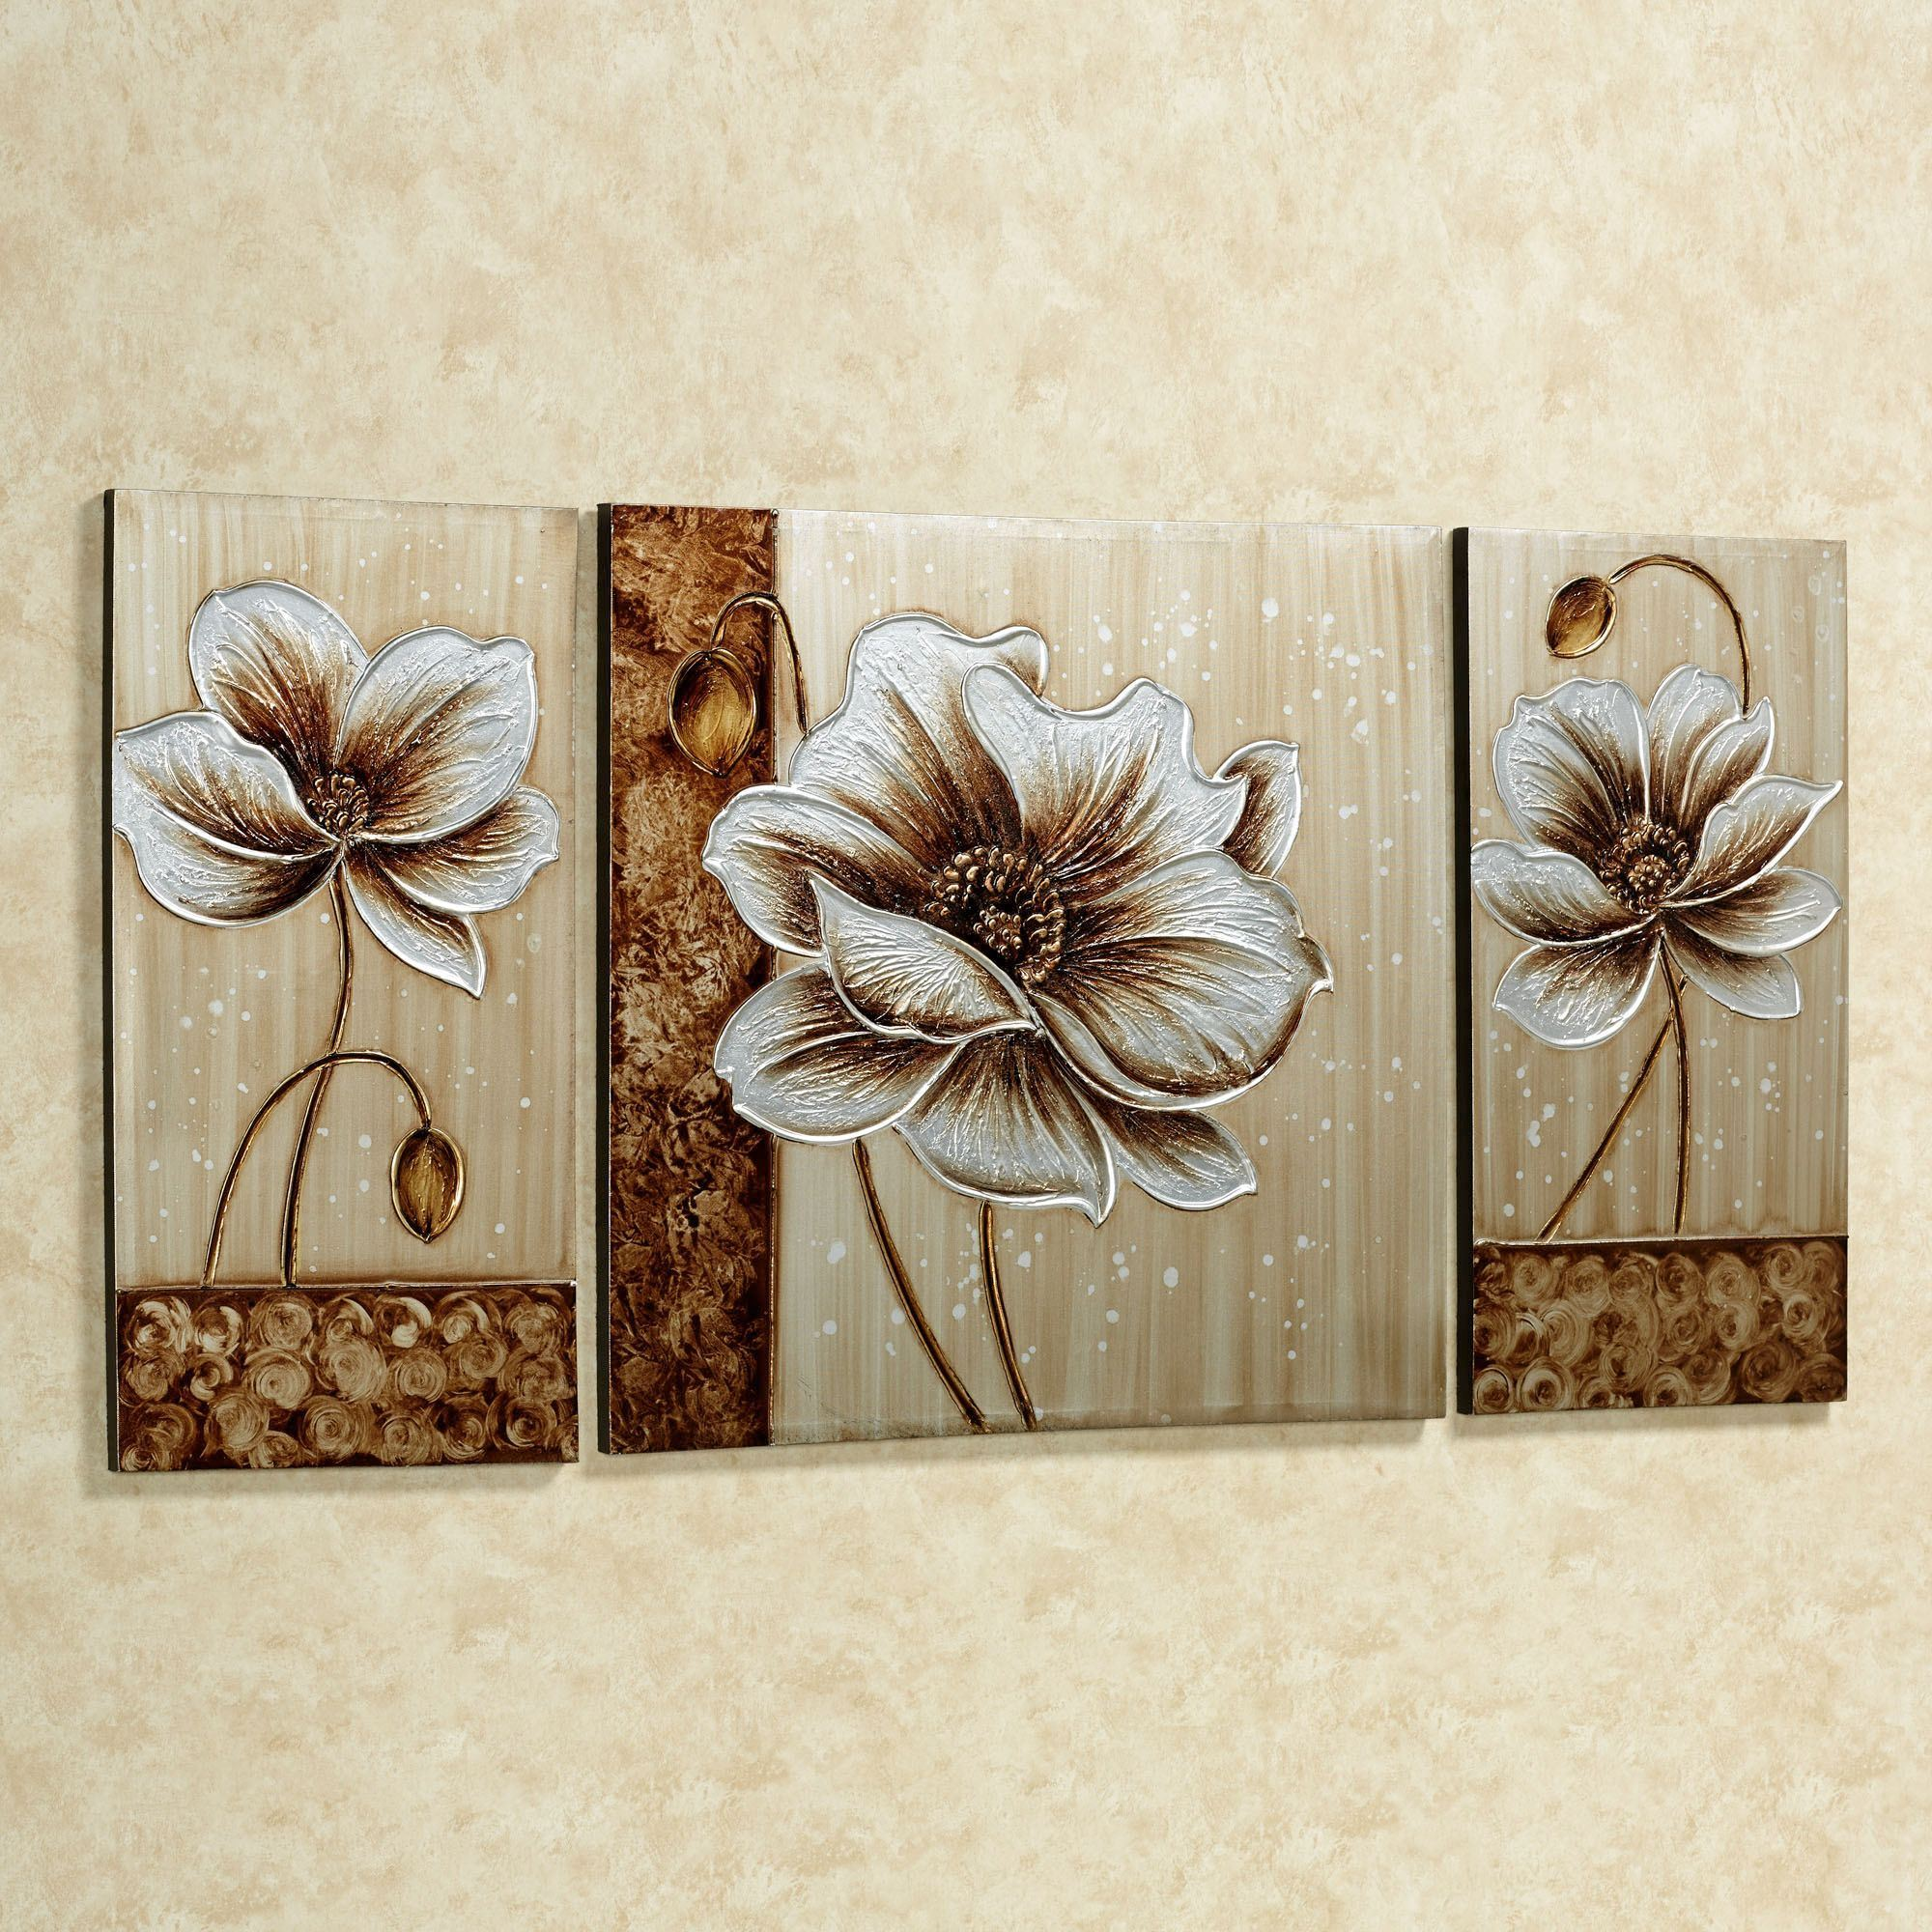 Touch to zoom & Subtle Elegance Floral Canvas Wall Art Set